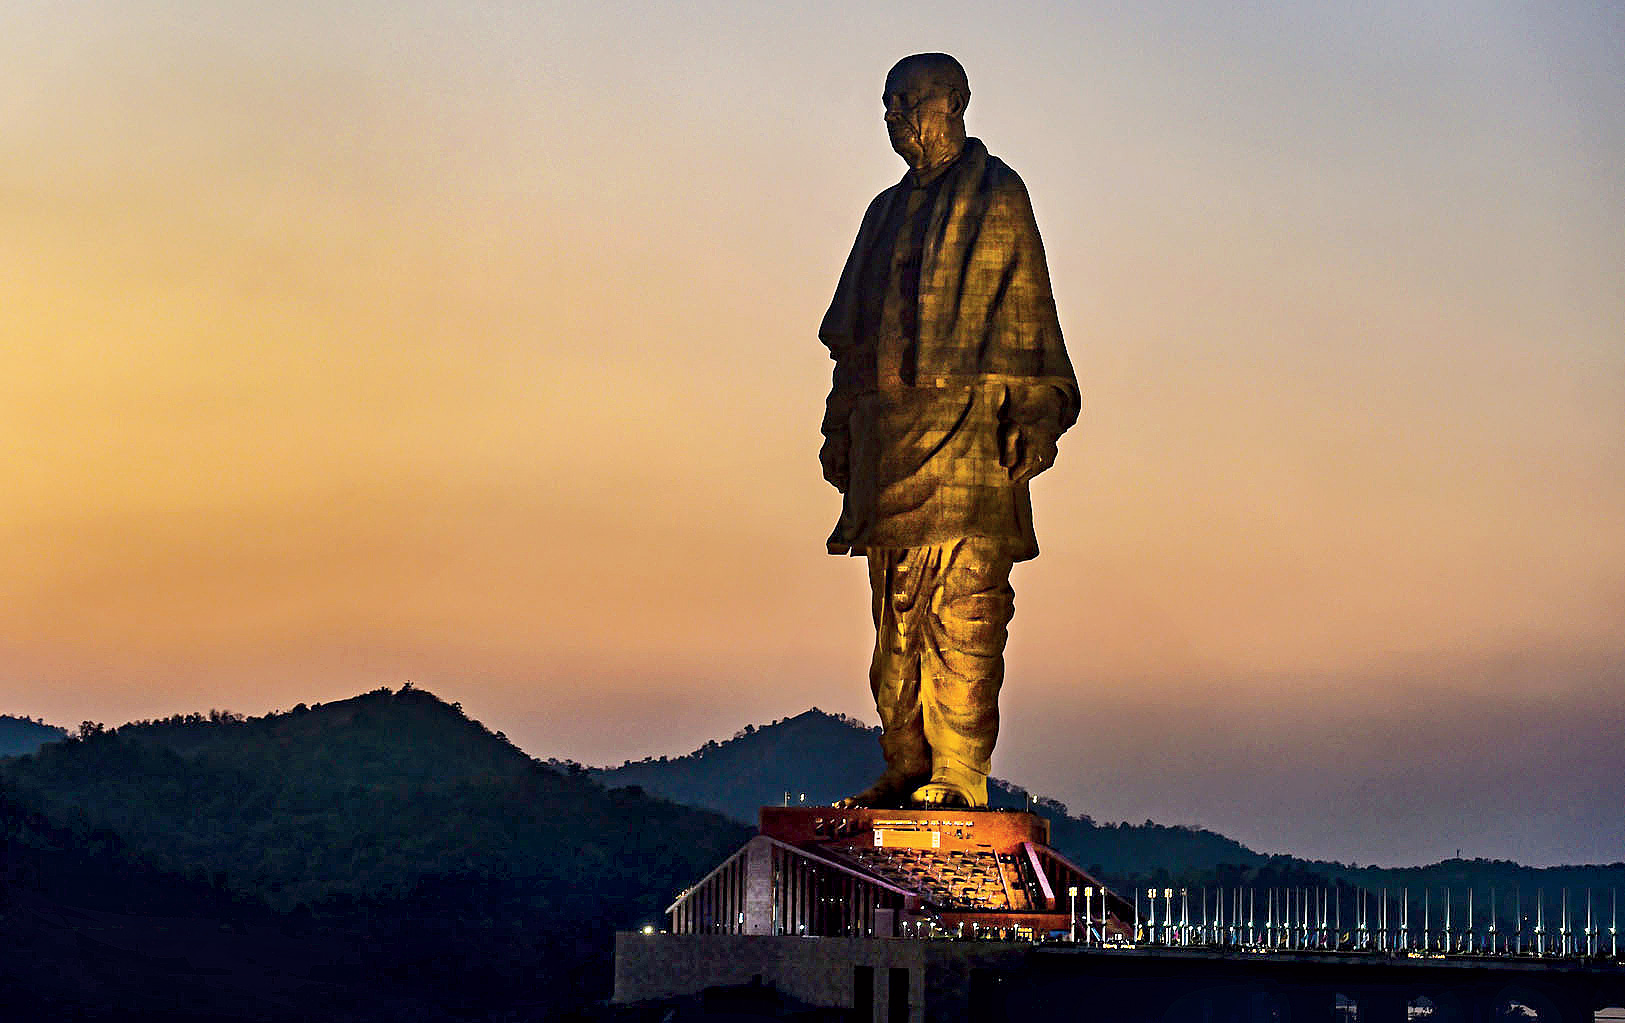 The Statue of Unity: An irony cast in stone